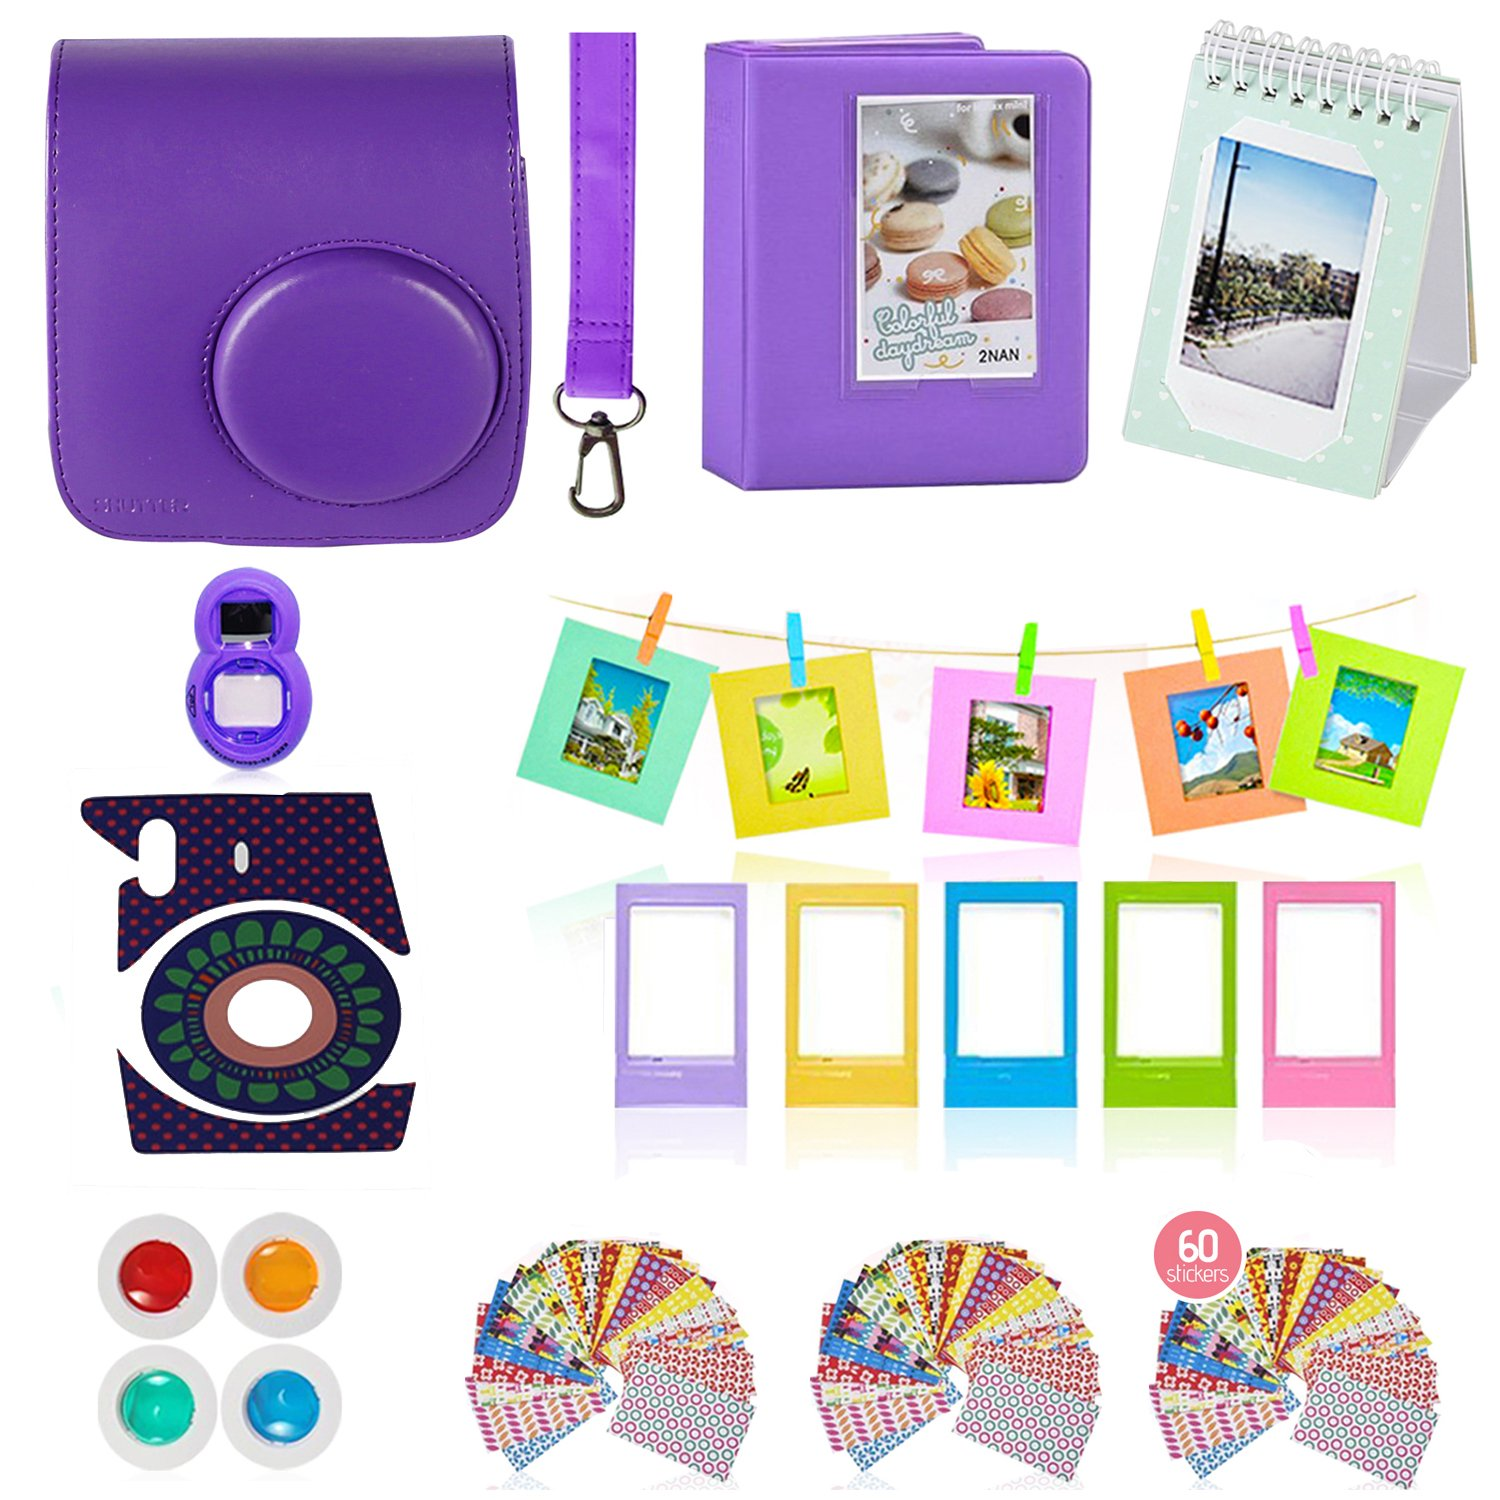 Fujifilm Instax Mini 9 or Mini 8 Instant Camera Accessories Bundle, 11 Piece Gift set Includes Instax Mini Case + Strap, 2 Photo Albums, Filters, Selfie lens, Hanging + Photo Frames, stickers & More. by Shutter